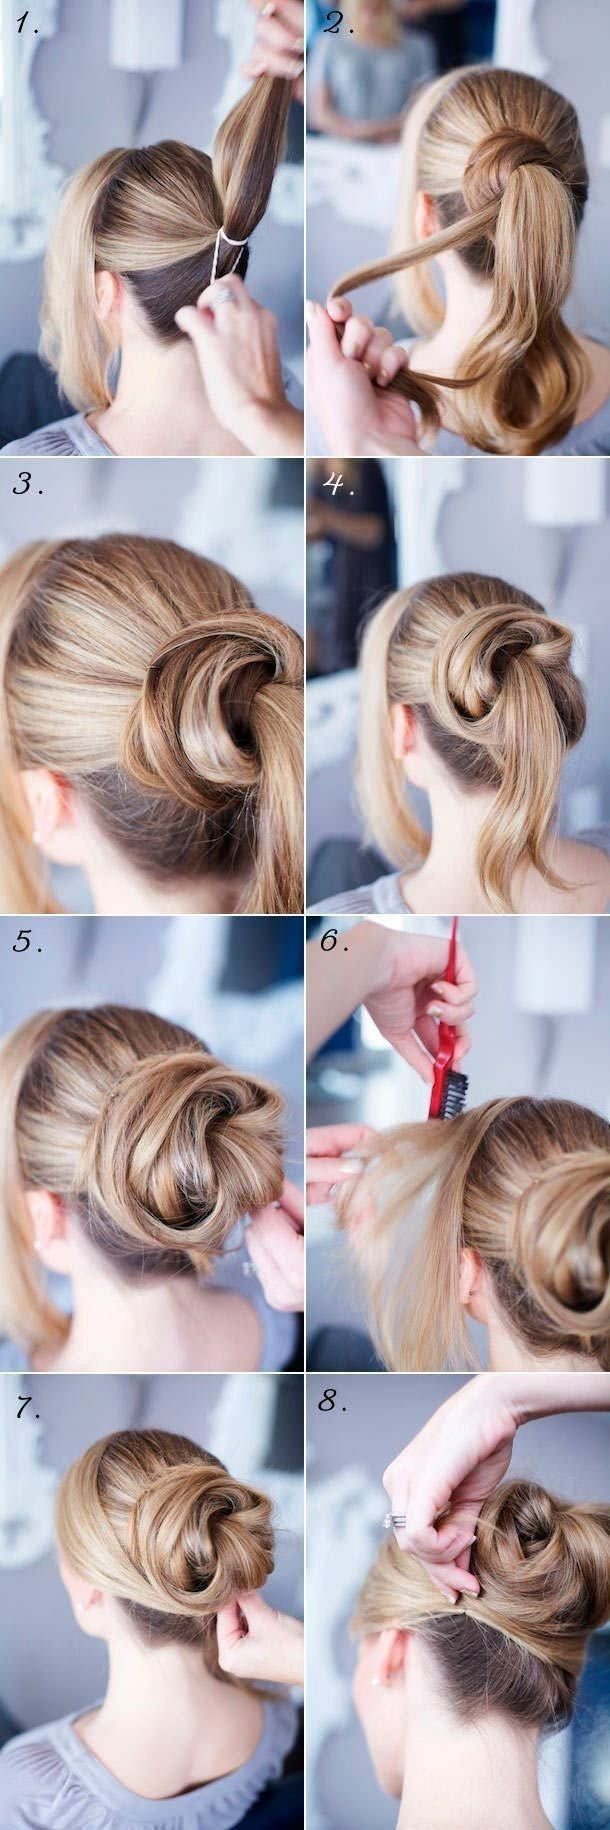 trendy low bun updo hairstyles tutorials easy cute hair